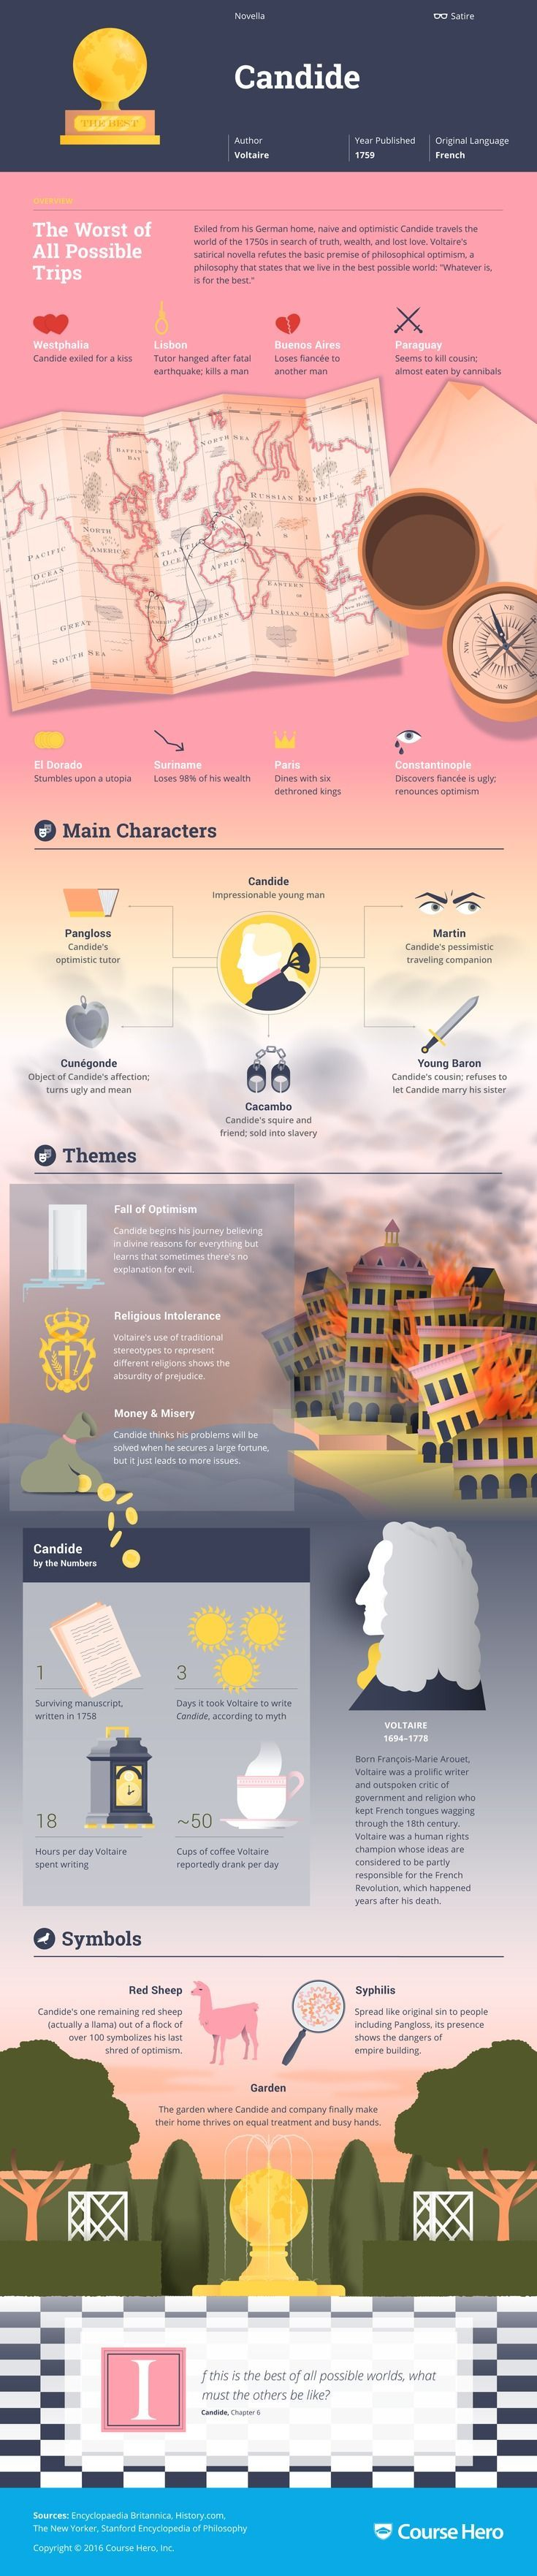 This @CourseHero infographic on Candide is both visually stunning and informative!